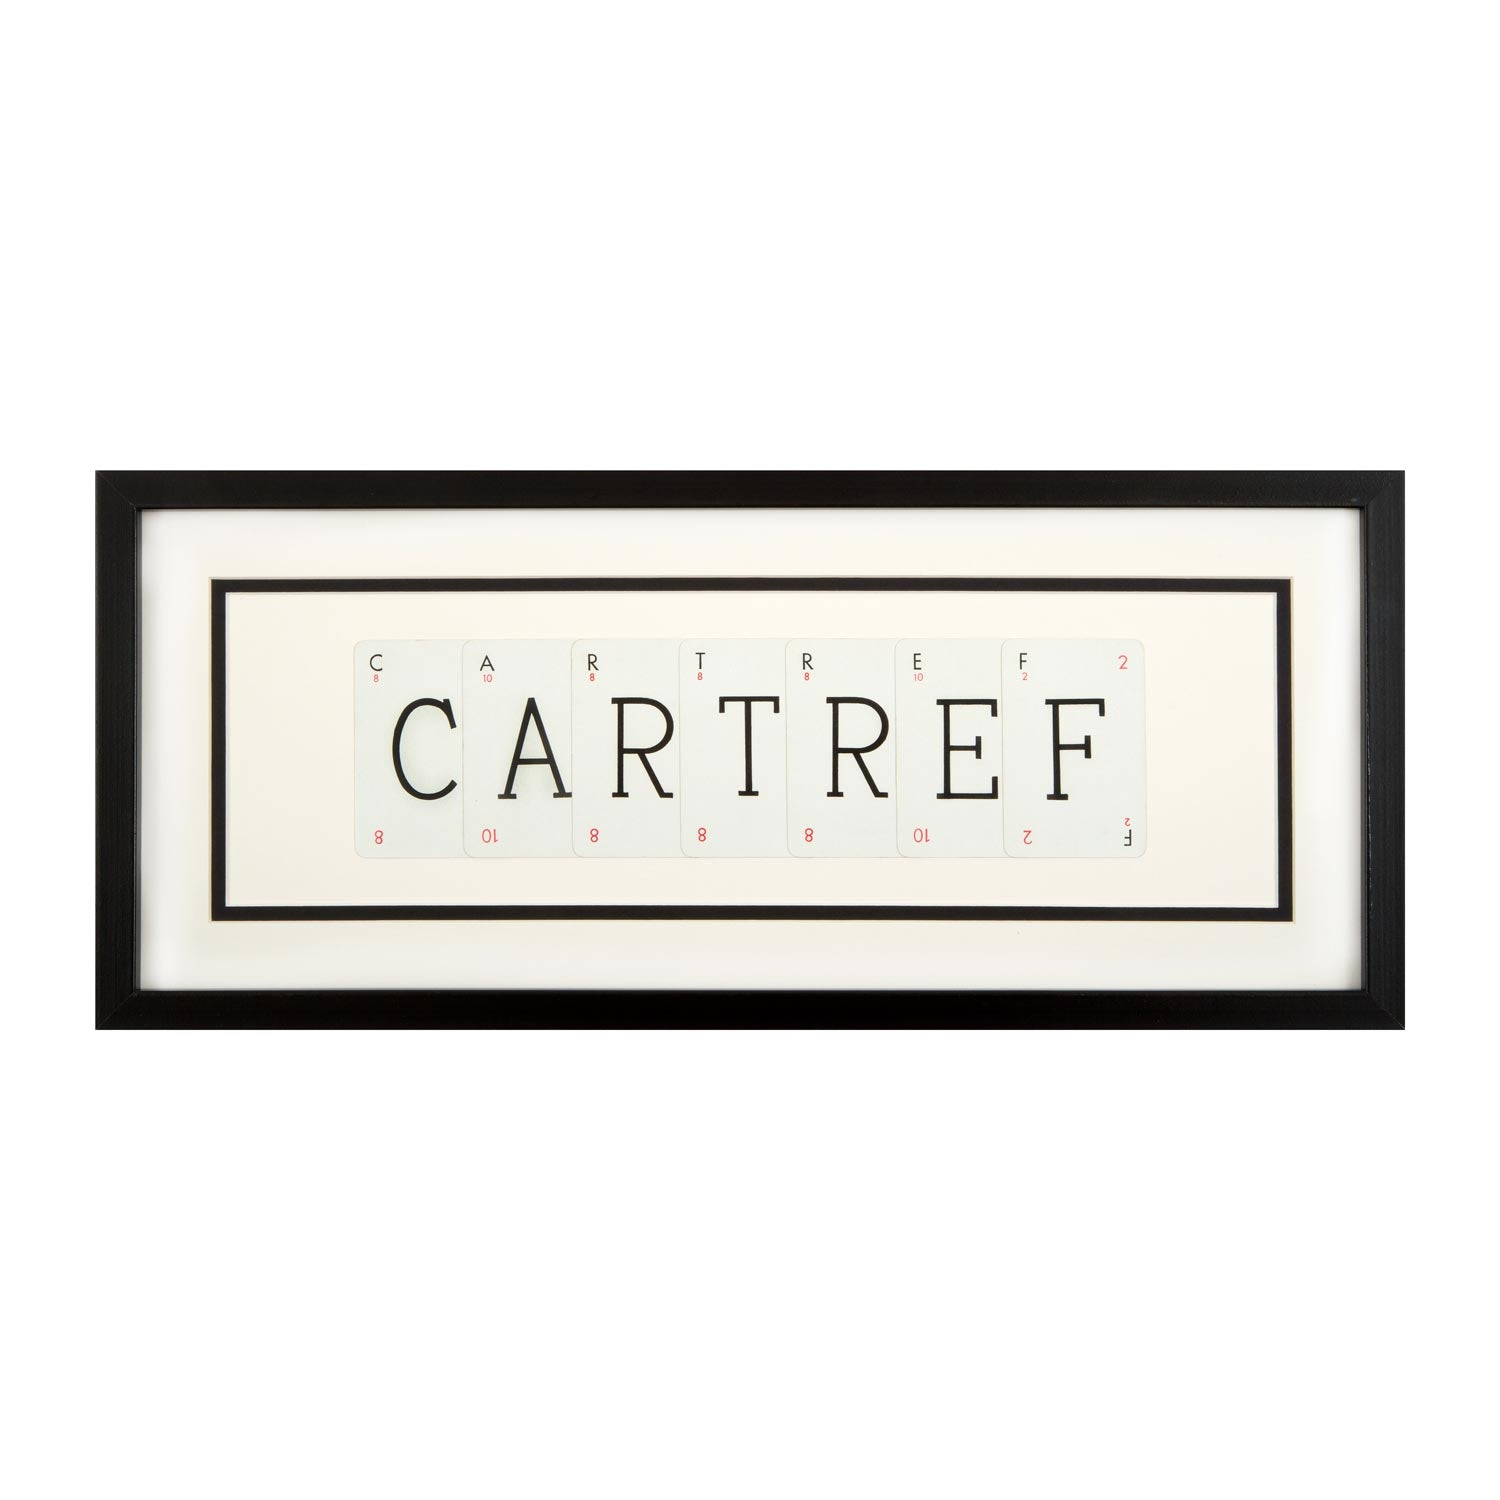 Picture - Vintage Playing Cards - Cartref / Home